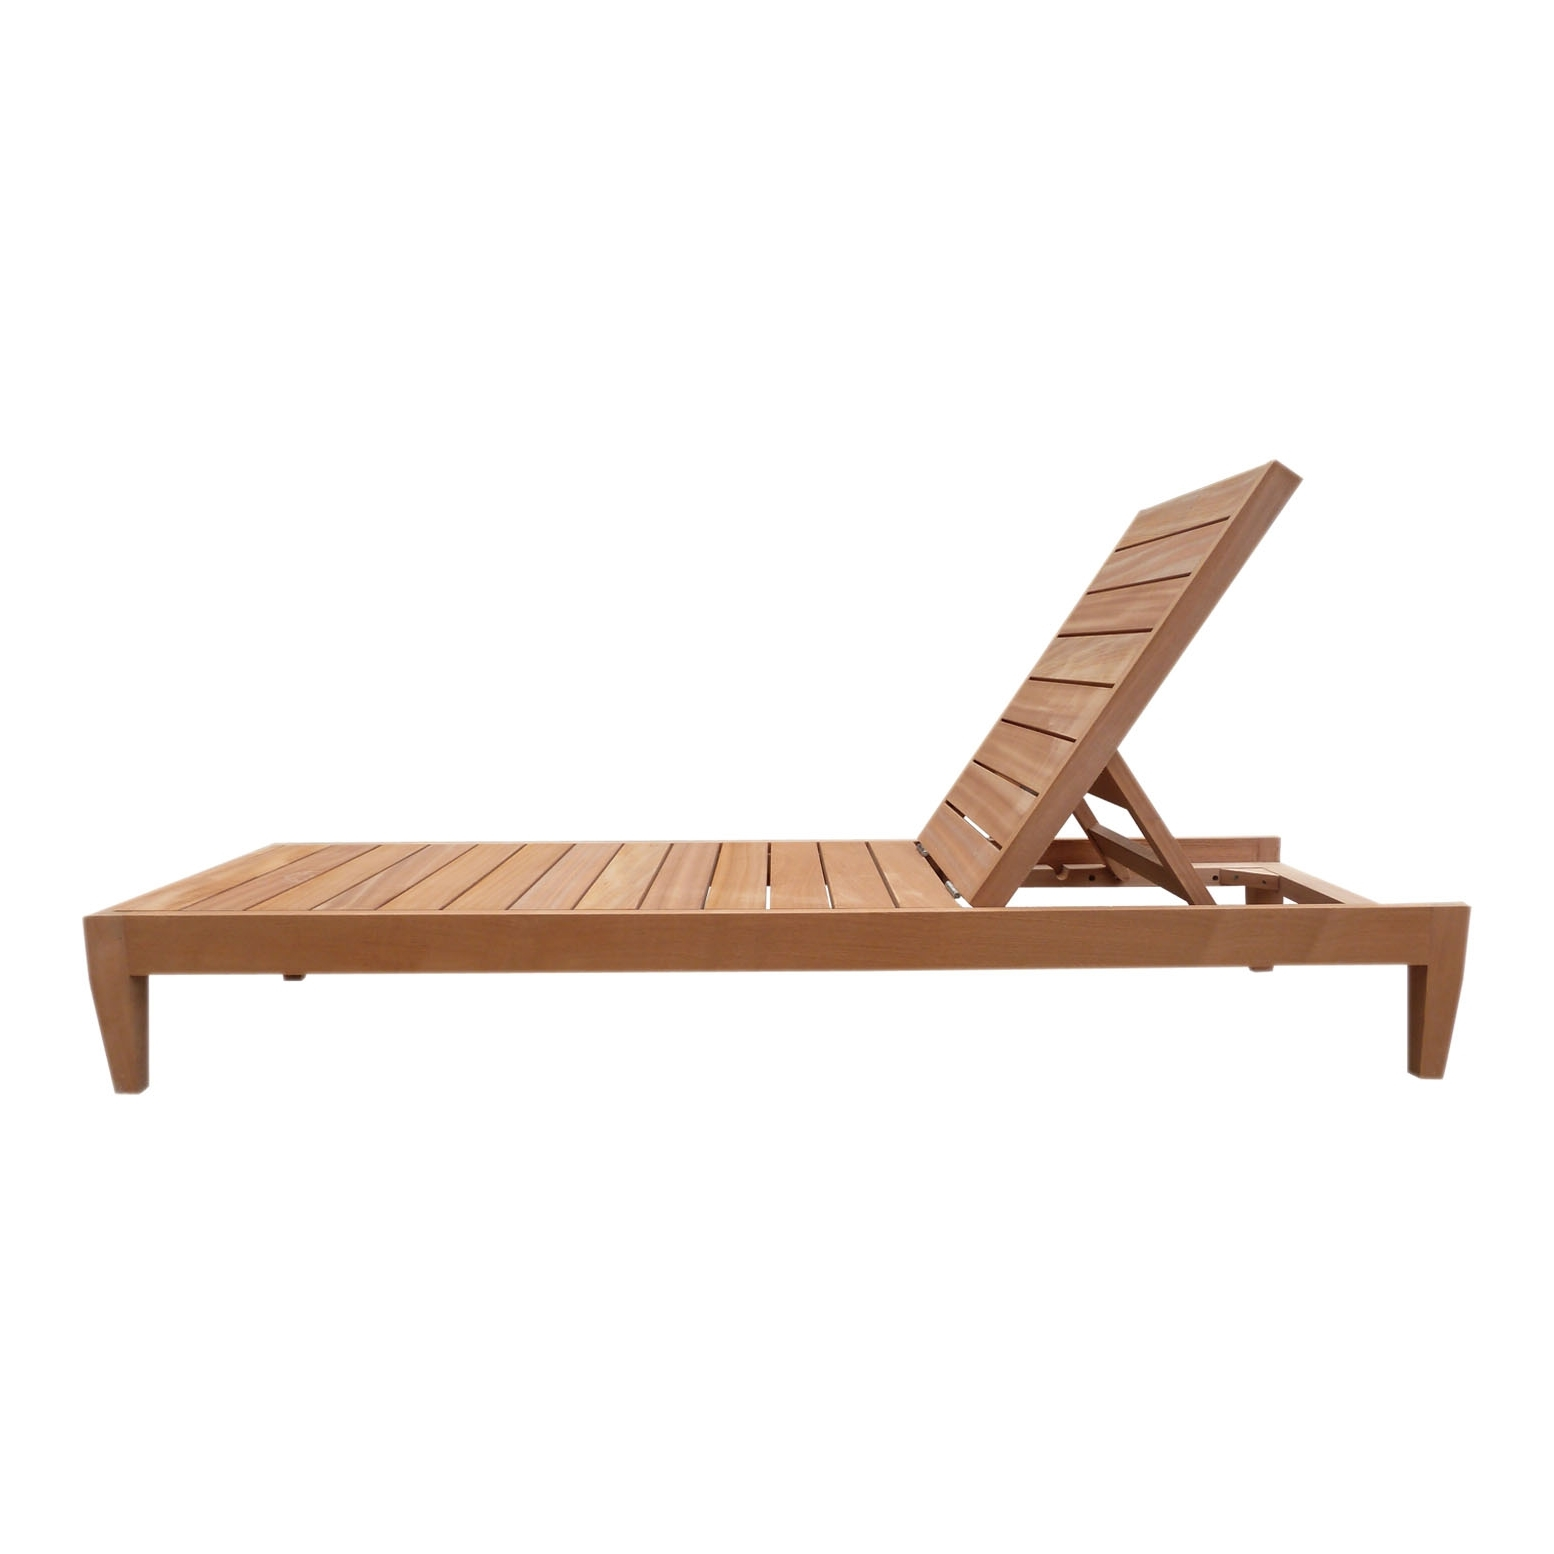 Famous Wooden Outdoor Chaise Lounge Chairs In Resin Chaise Lounge Plastic Chaise Lounge Pool Chaise Lounge (View 12 of 15)